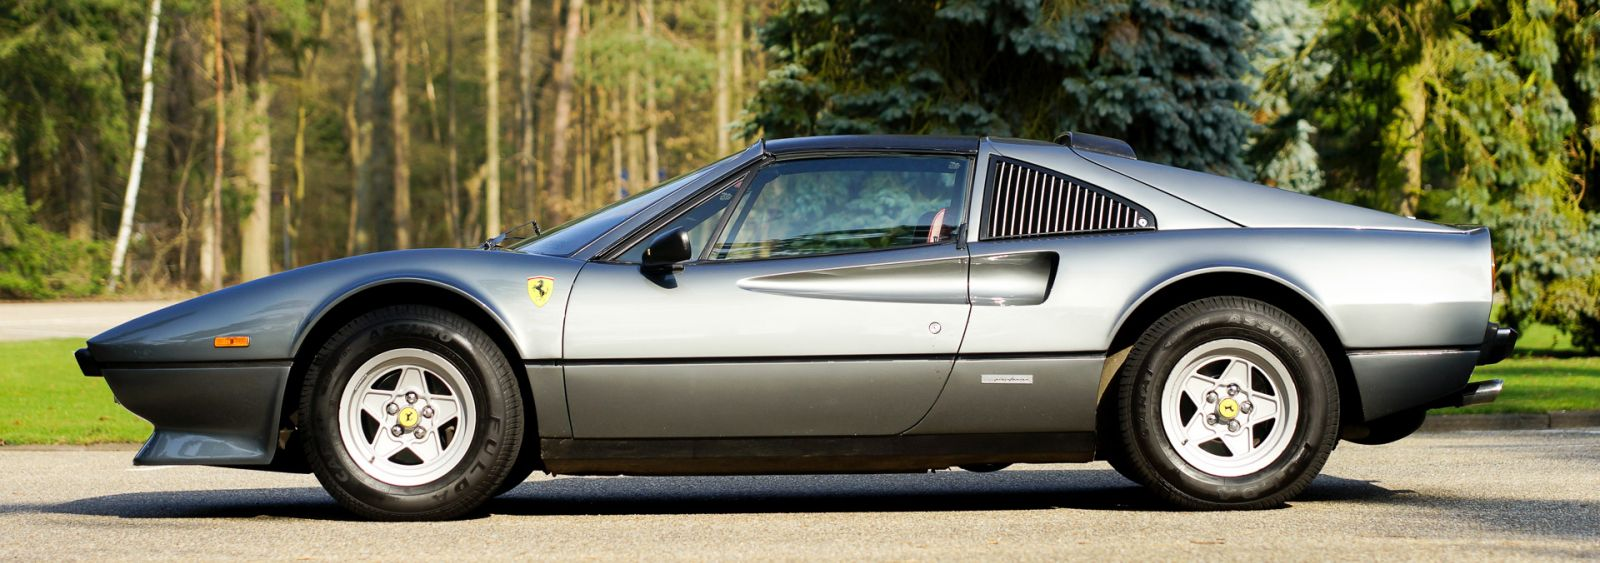 cars ferrari sale classic for gts forsale of